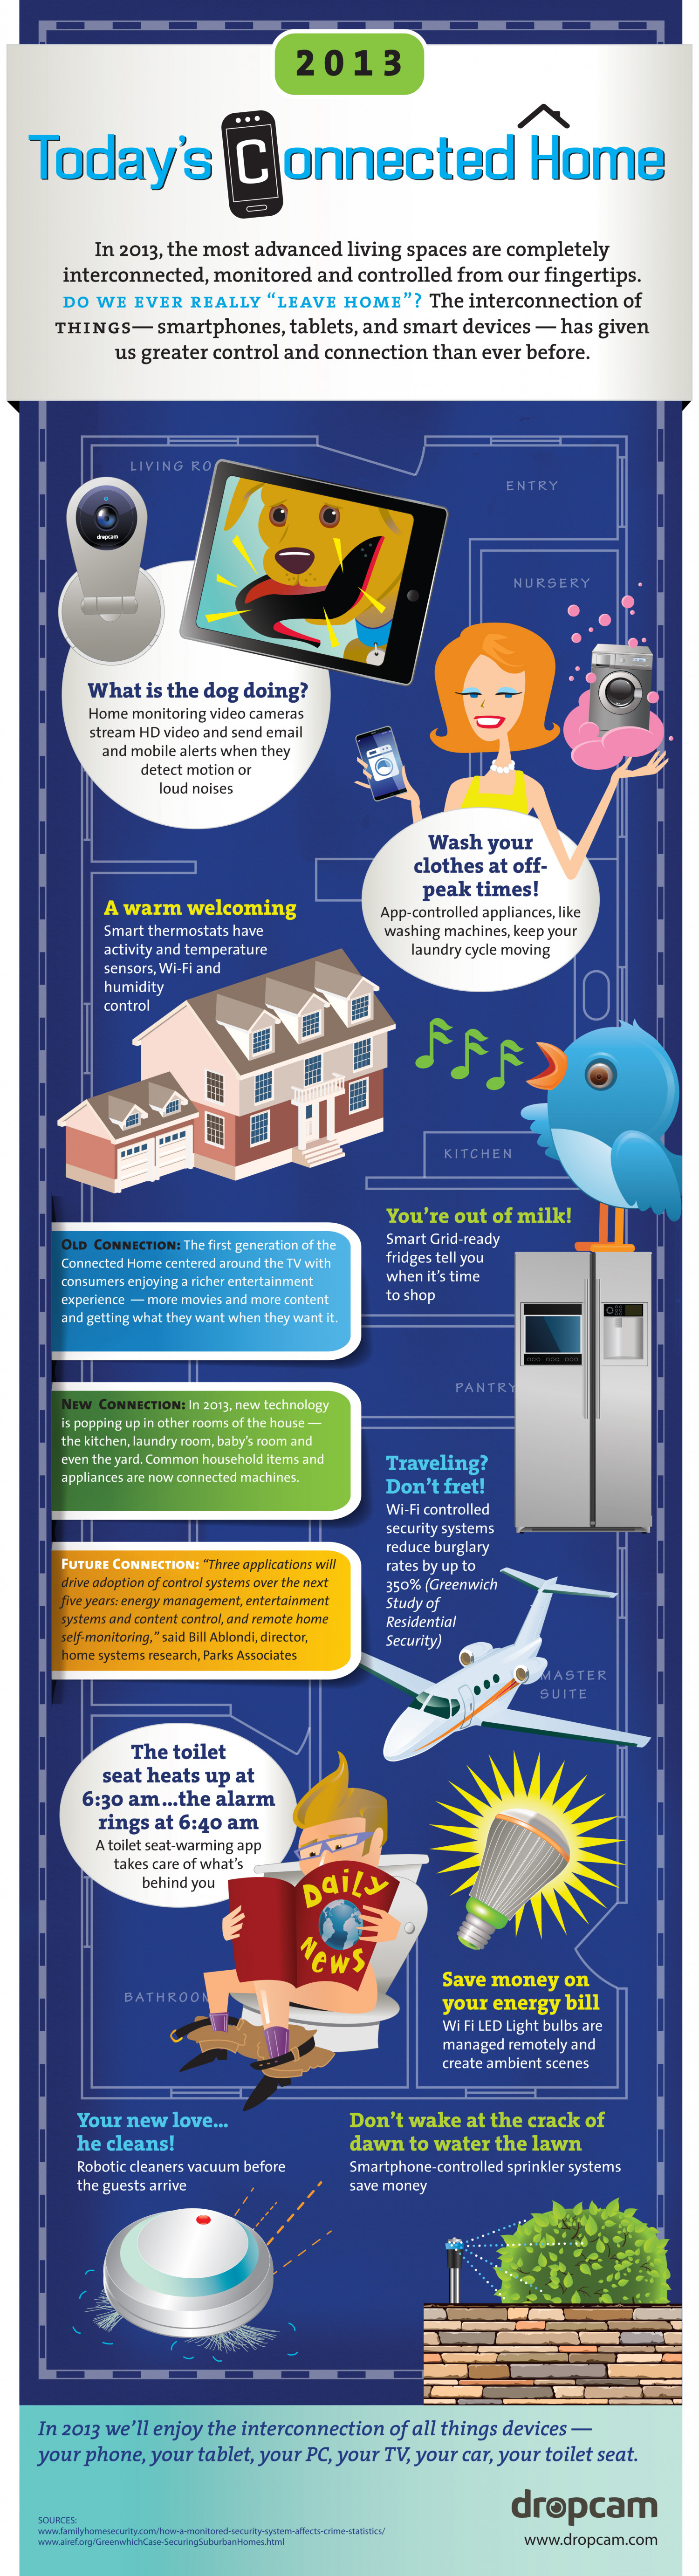 2013 Today's Connected Home Infographic